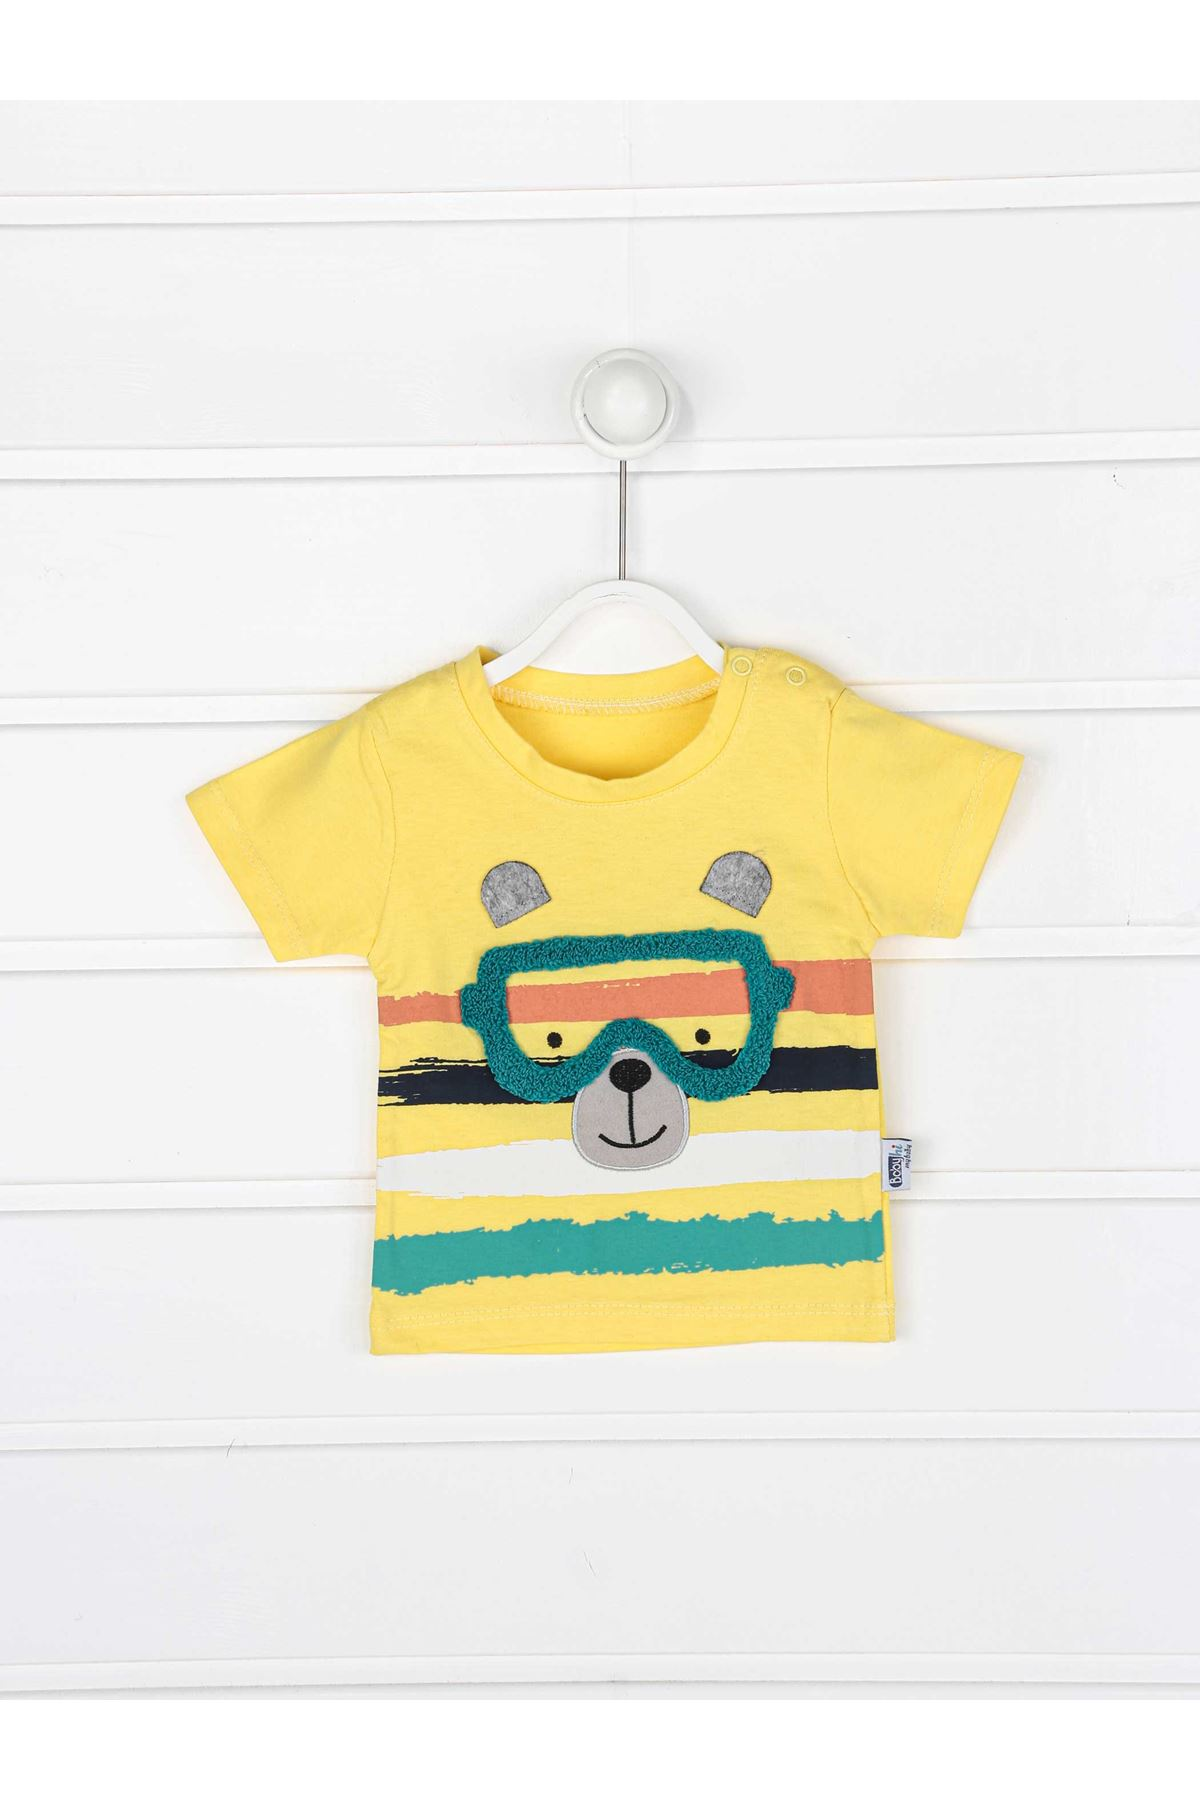 Yellow summer boy shorts t-shirt 2 piece set suit summer vacation style suit models